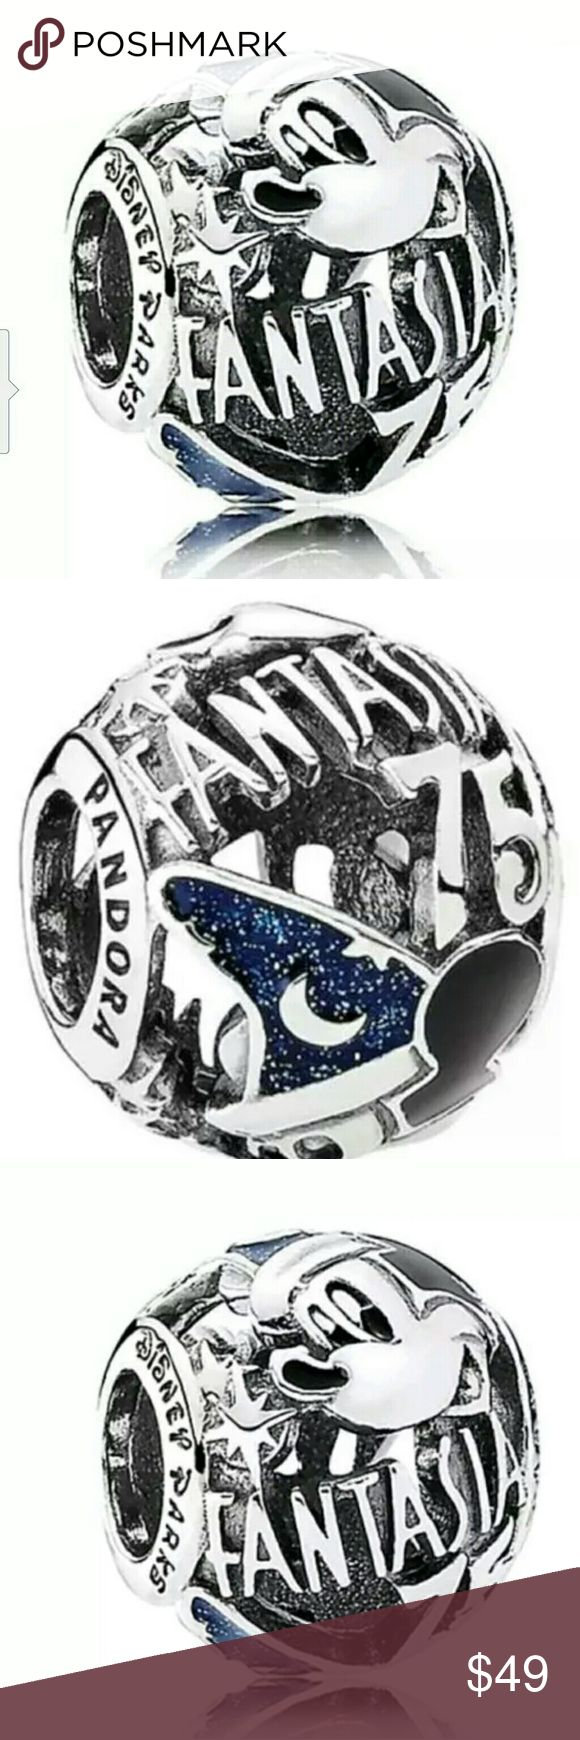 NEW PANDORA DISNEY'S FANTASIA 75th ANNIVERSARY NEW, PANDORA DISNEY'S FANTASIA 75th ANNIVERSARY MICKEY SORCERER CHARM BEAD. PANDORA Jewelry Bracelets